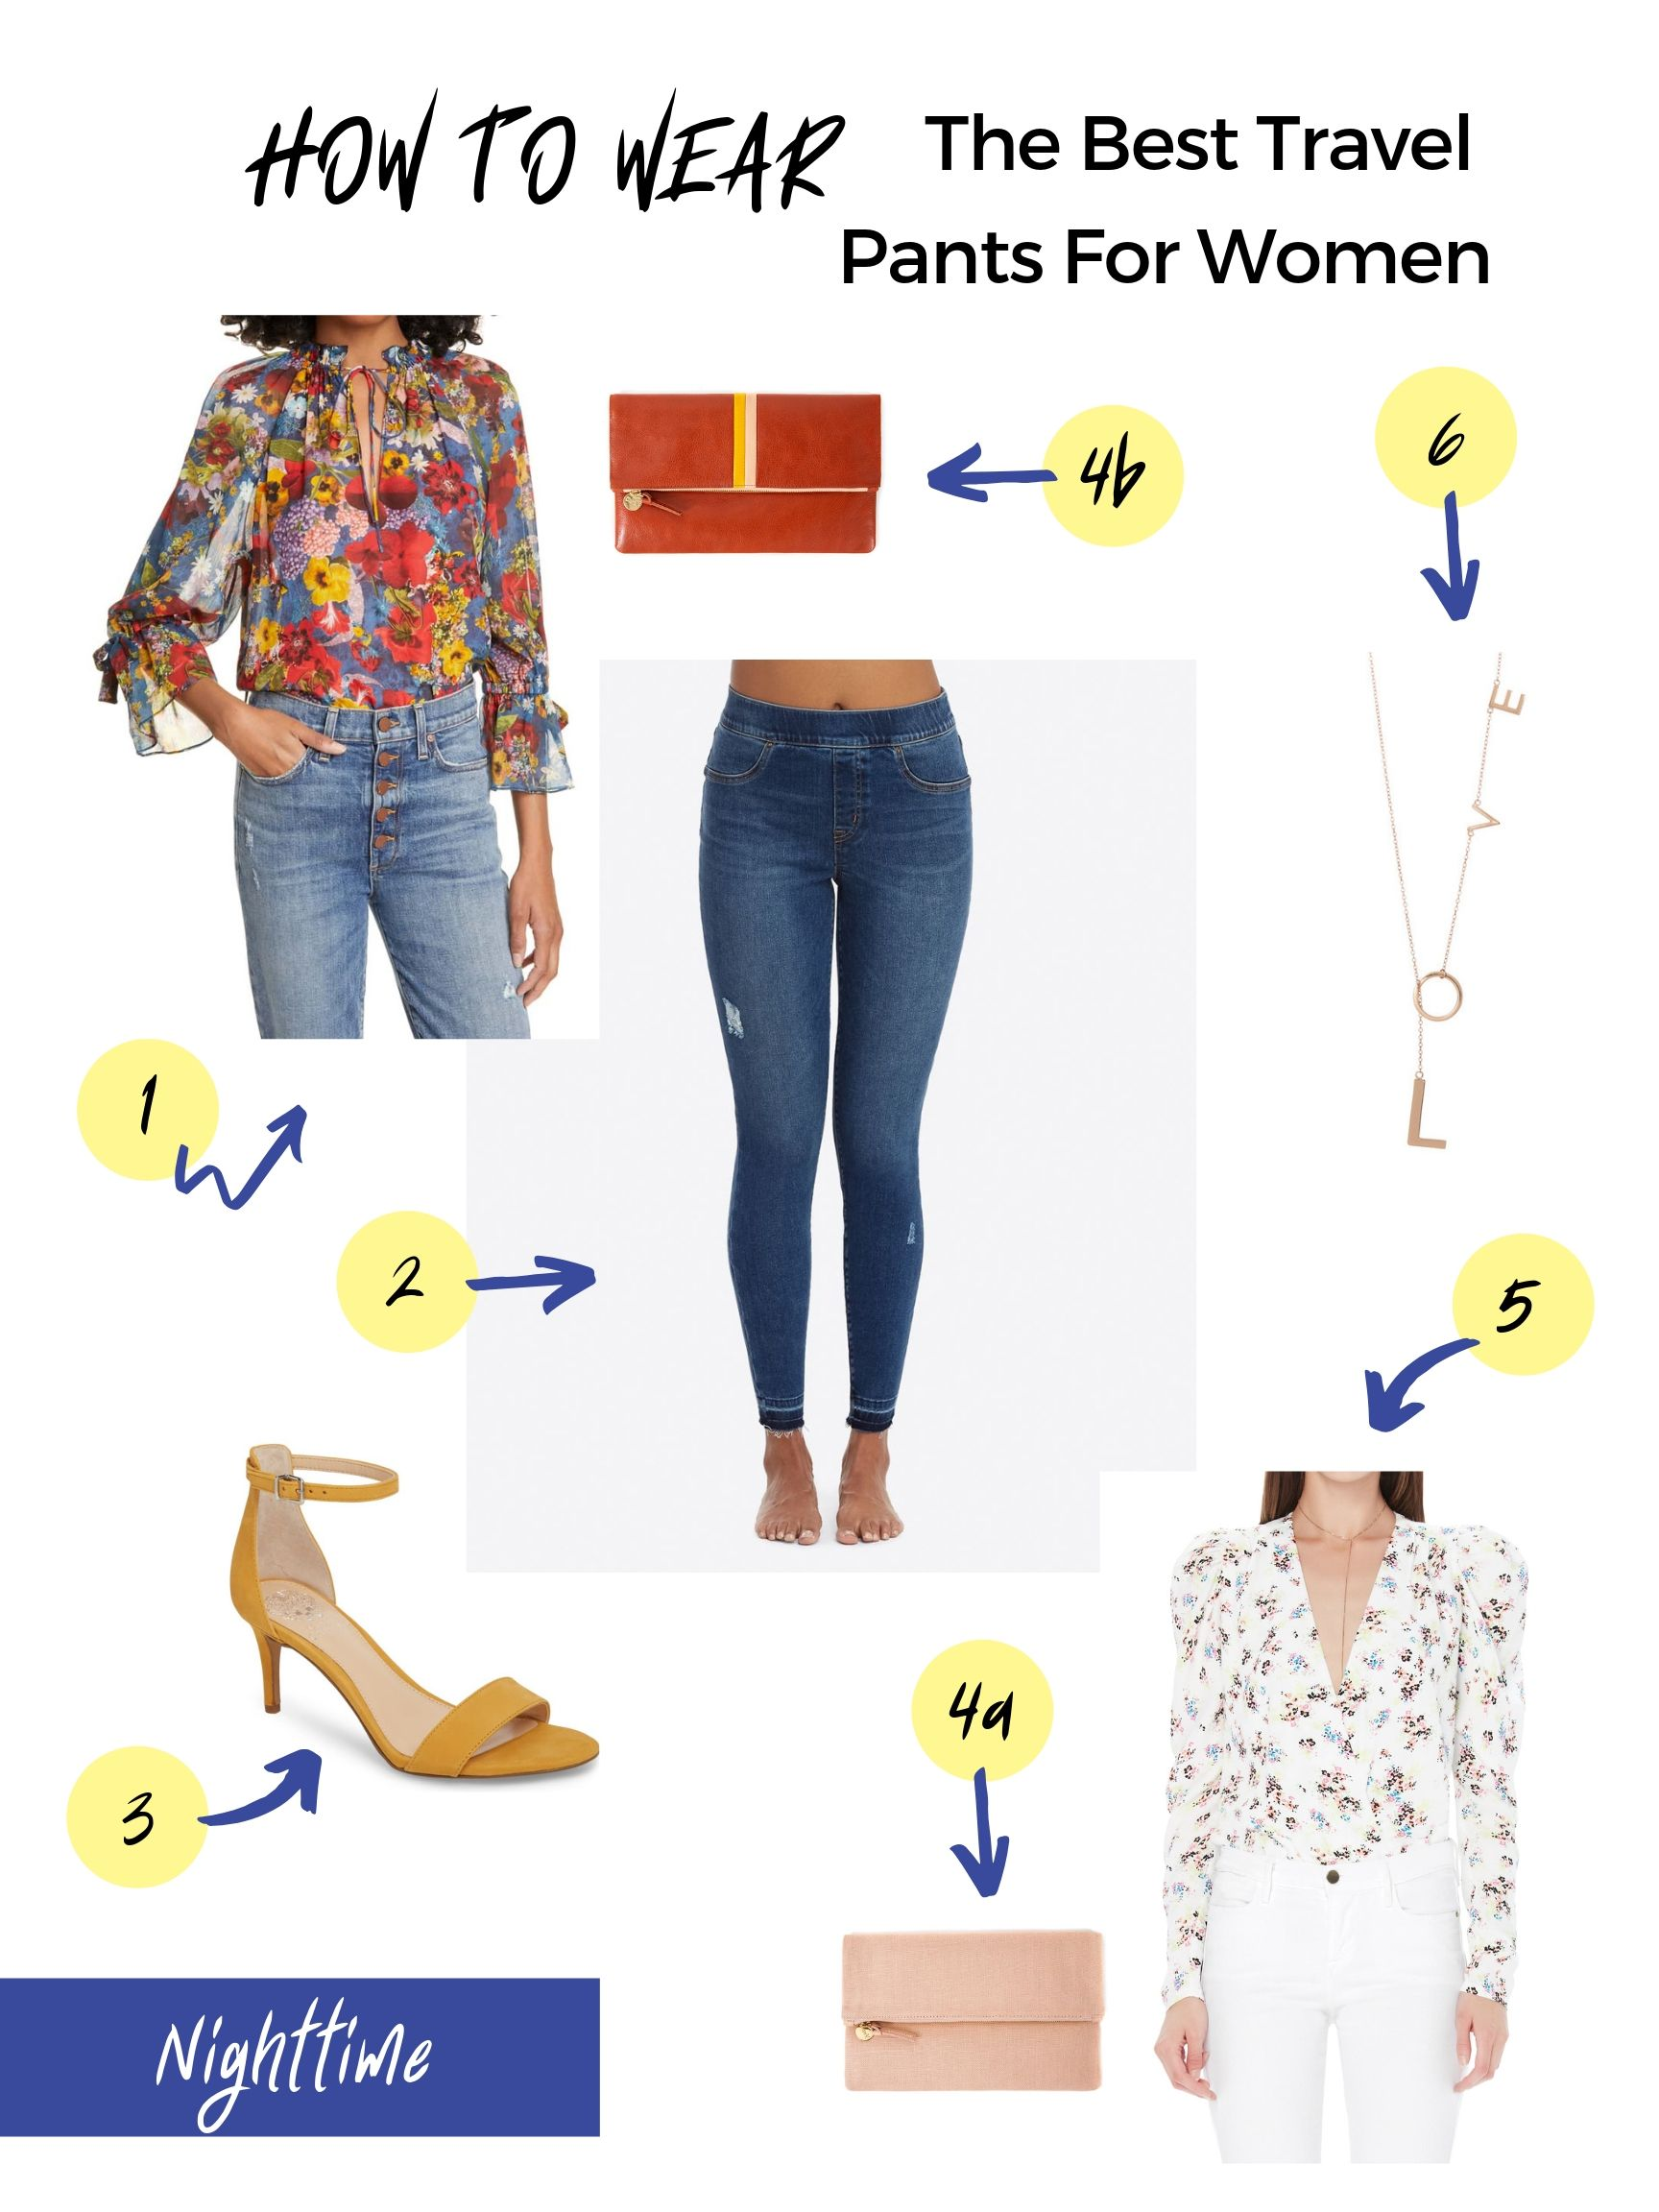 The Best Travel Pants for Women: How to style my favorite travel pants for nighttime | mom fashion tips for traveling with kids | Stacie Billis